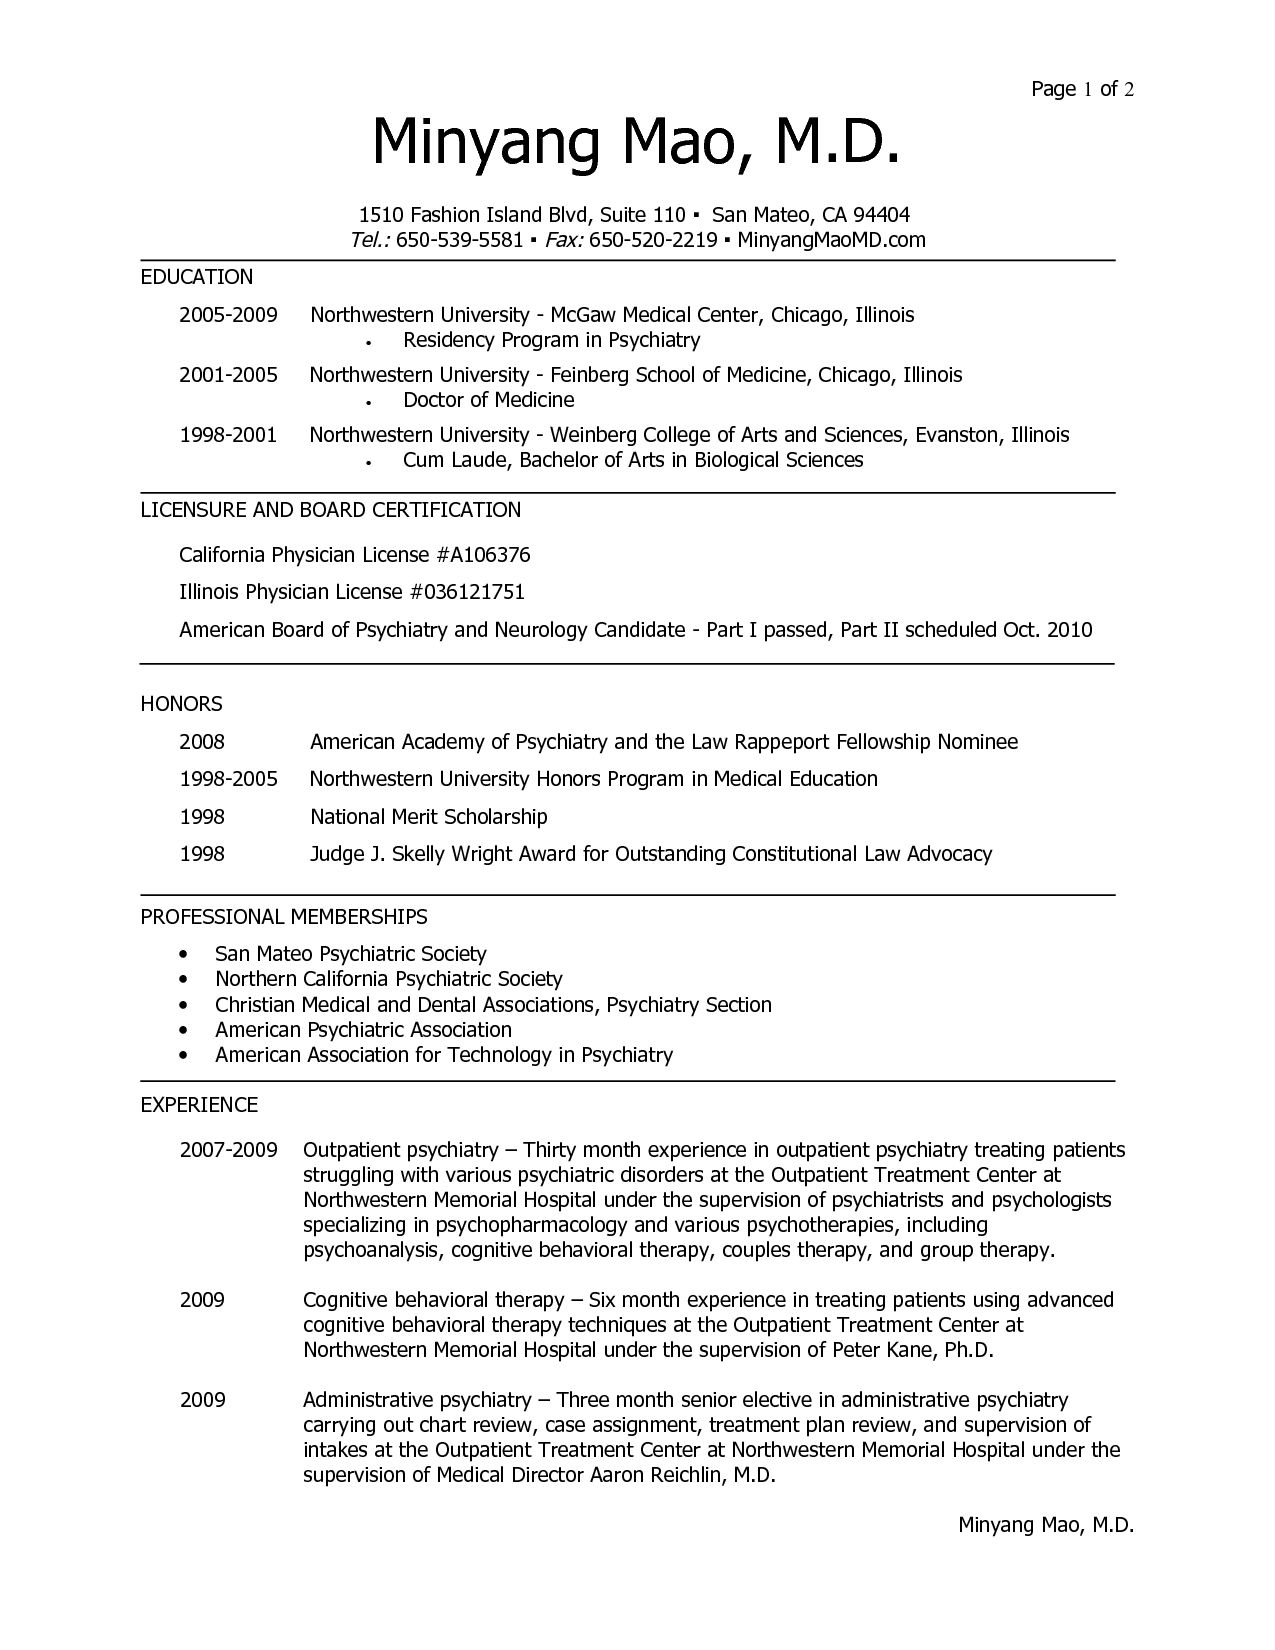 Resumes Templates Free Medical School Resume Template Medical School Resume Example